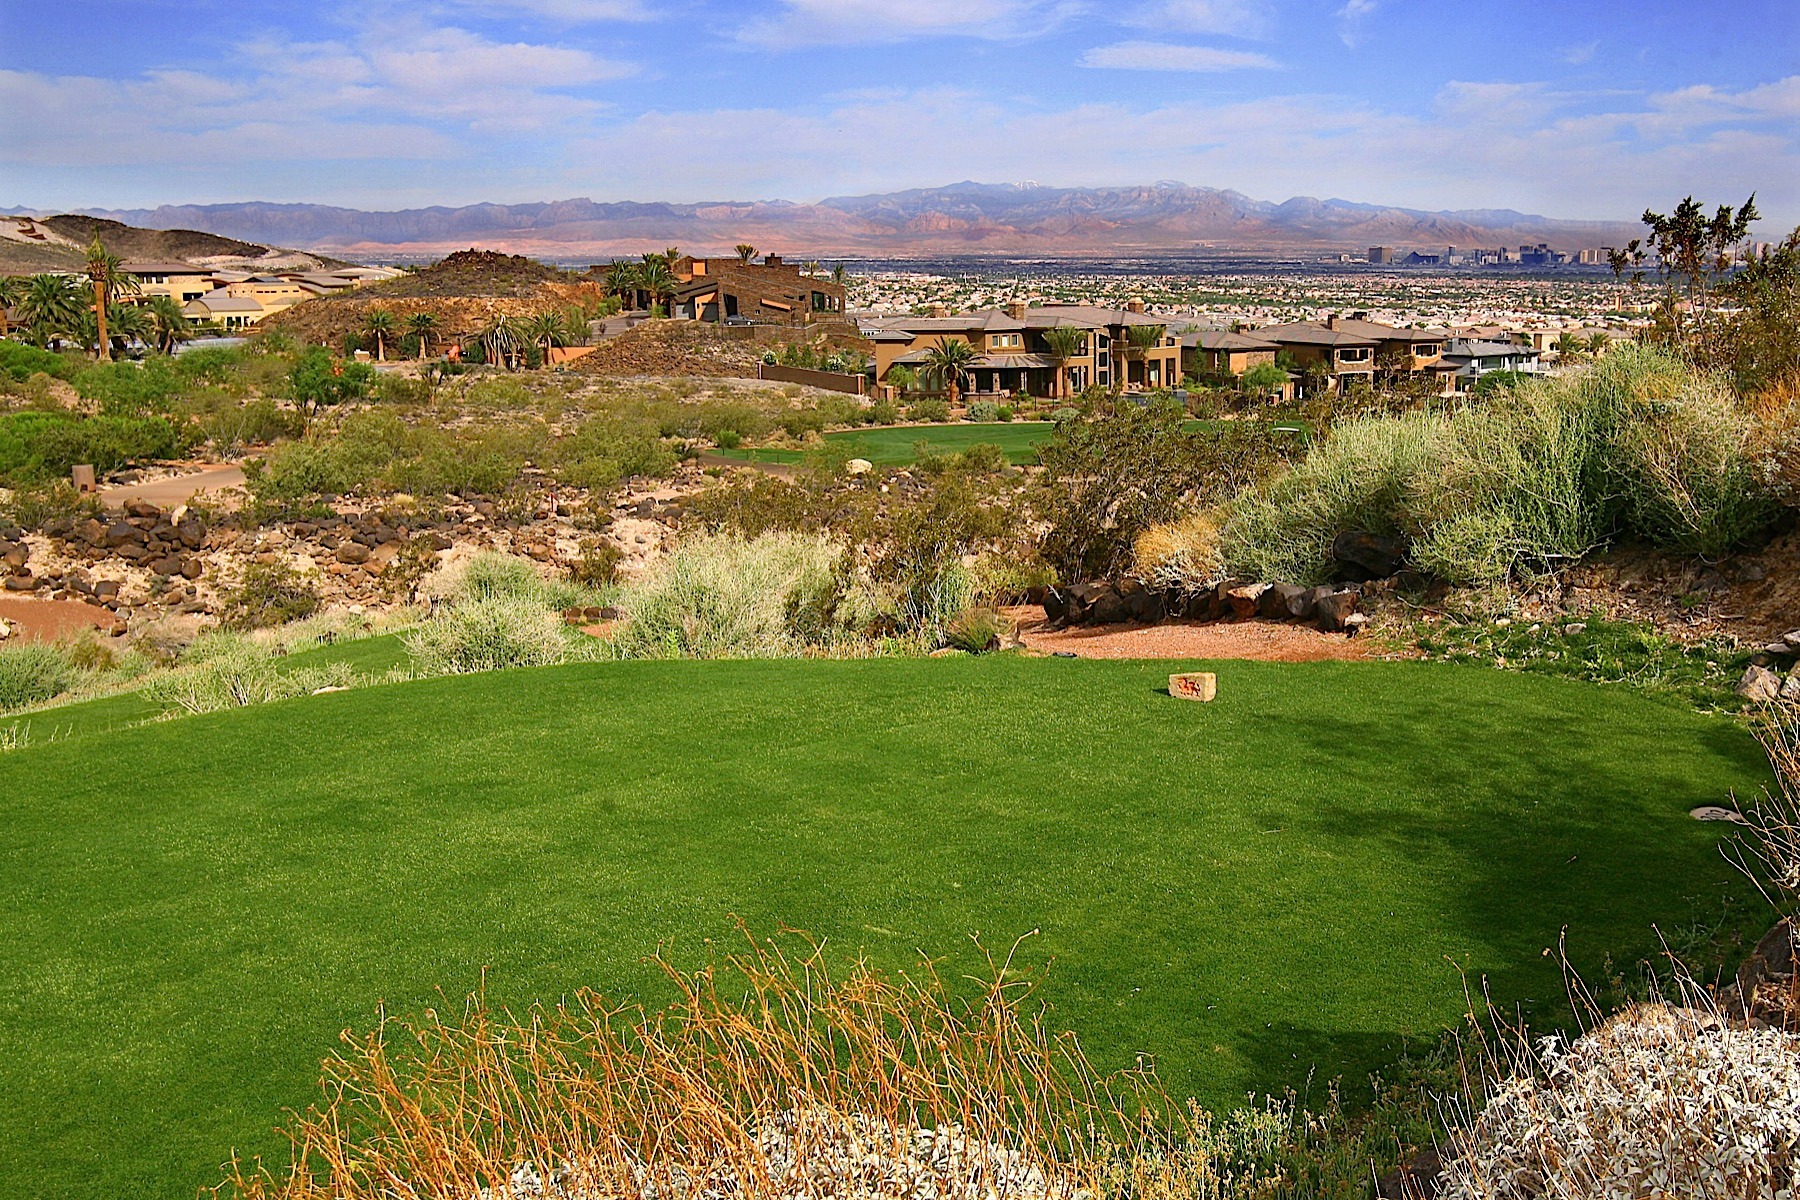 Additional photo for property listing at 1205 Amber Rim Dr 1205 Amber Rim Dr Henderson, Nevada 89012 United States